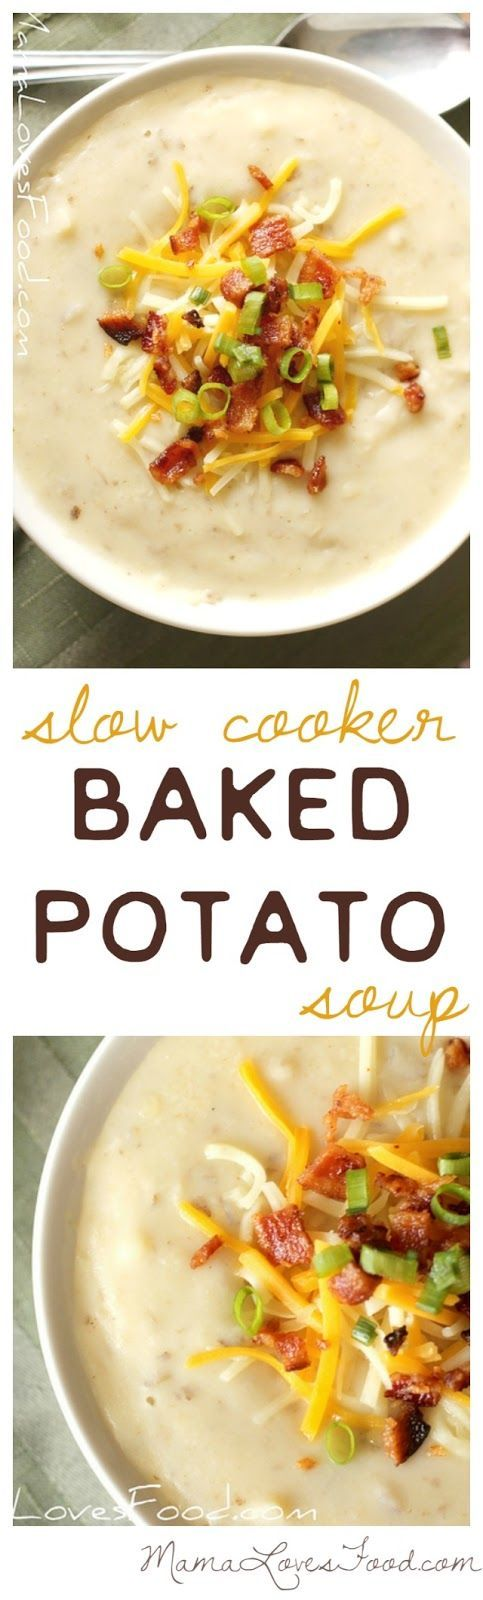 Slow Cooker Baked Potato Soup- Great Crock-Pot soup idea for dinners or lunches. Plus you can freeze it too!